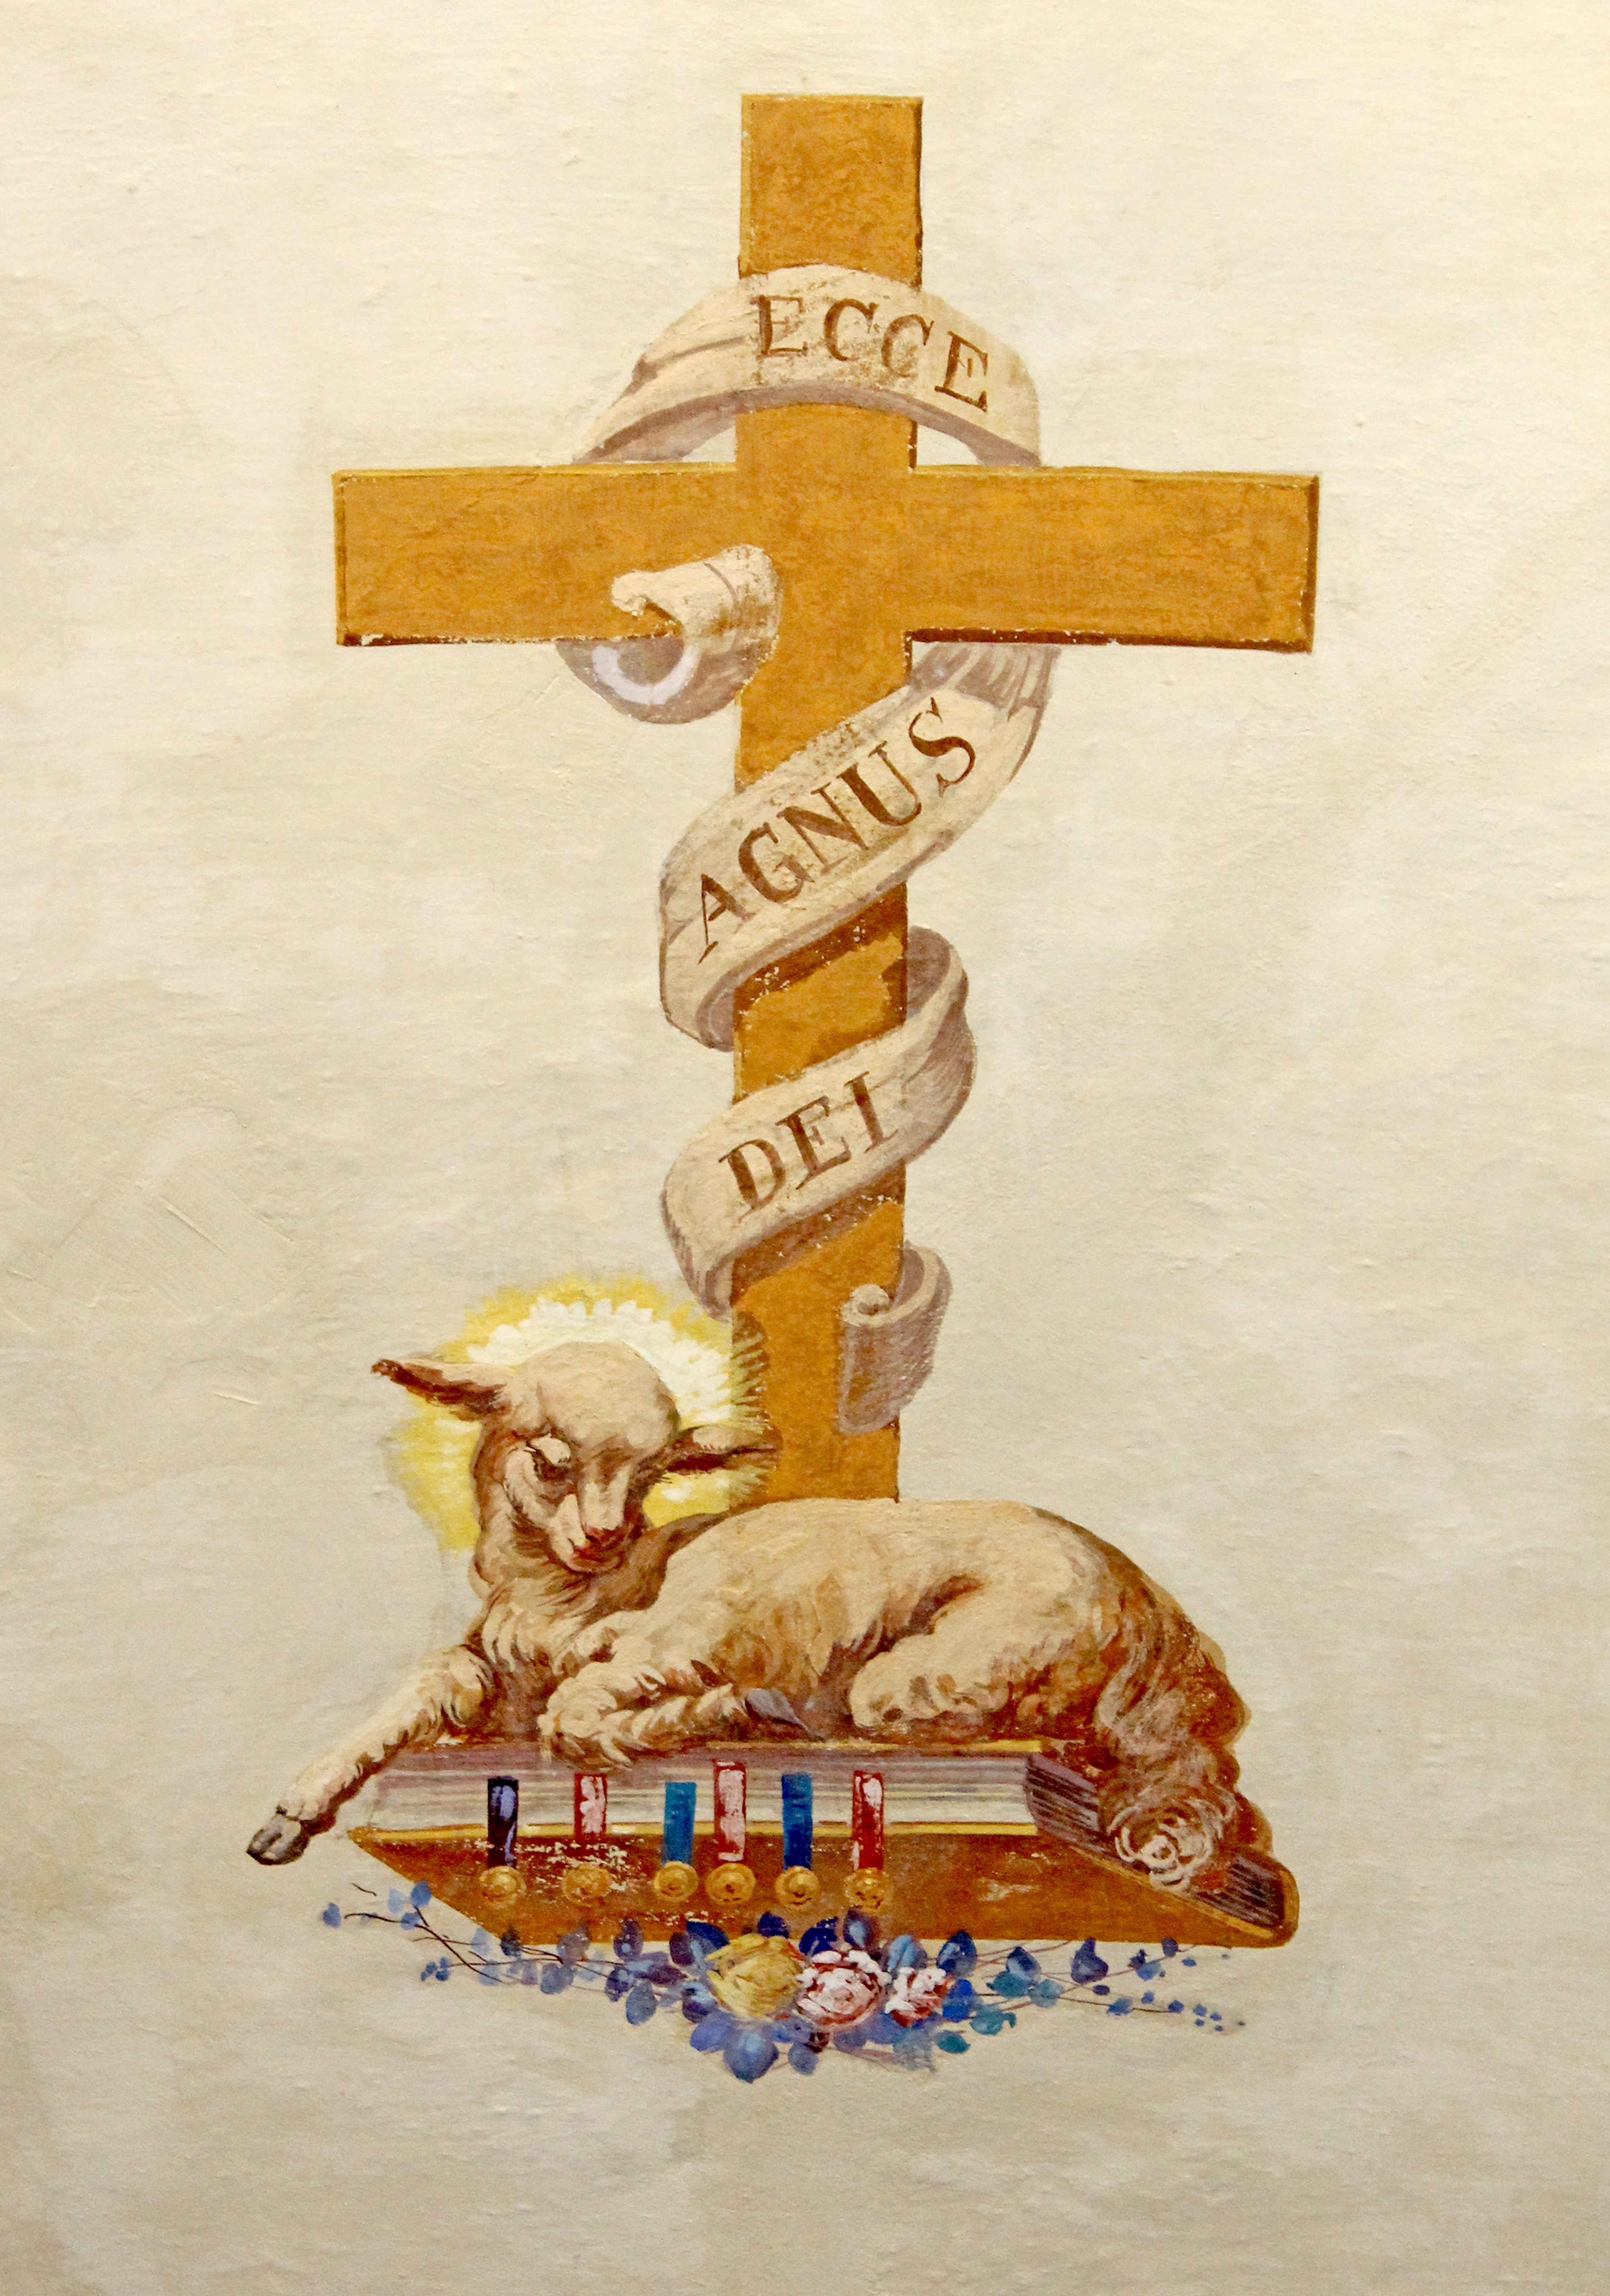 lamb on bible under cross illustration